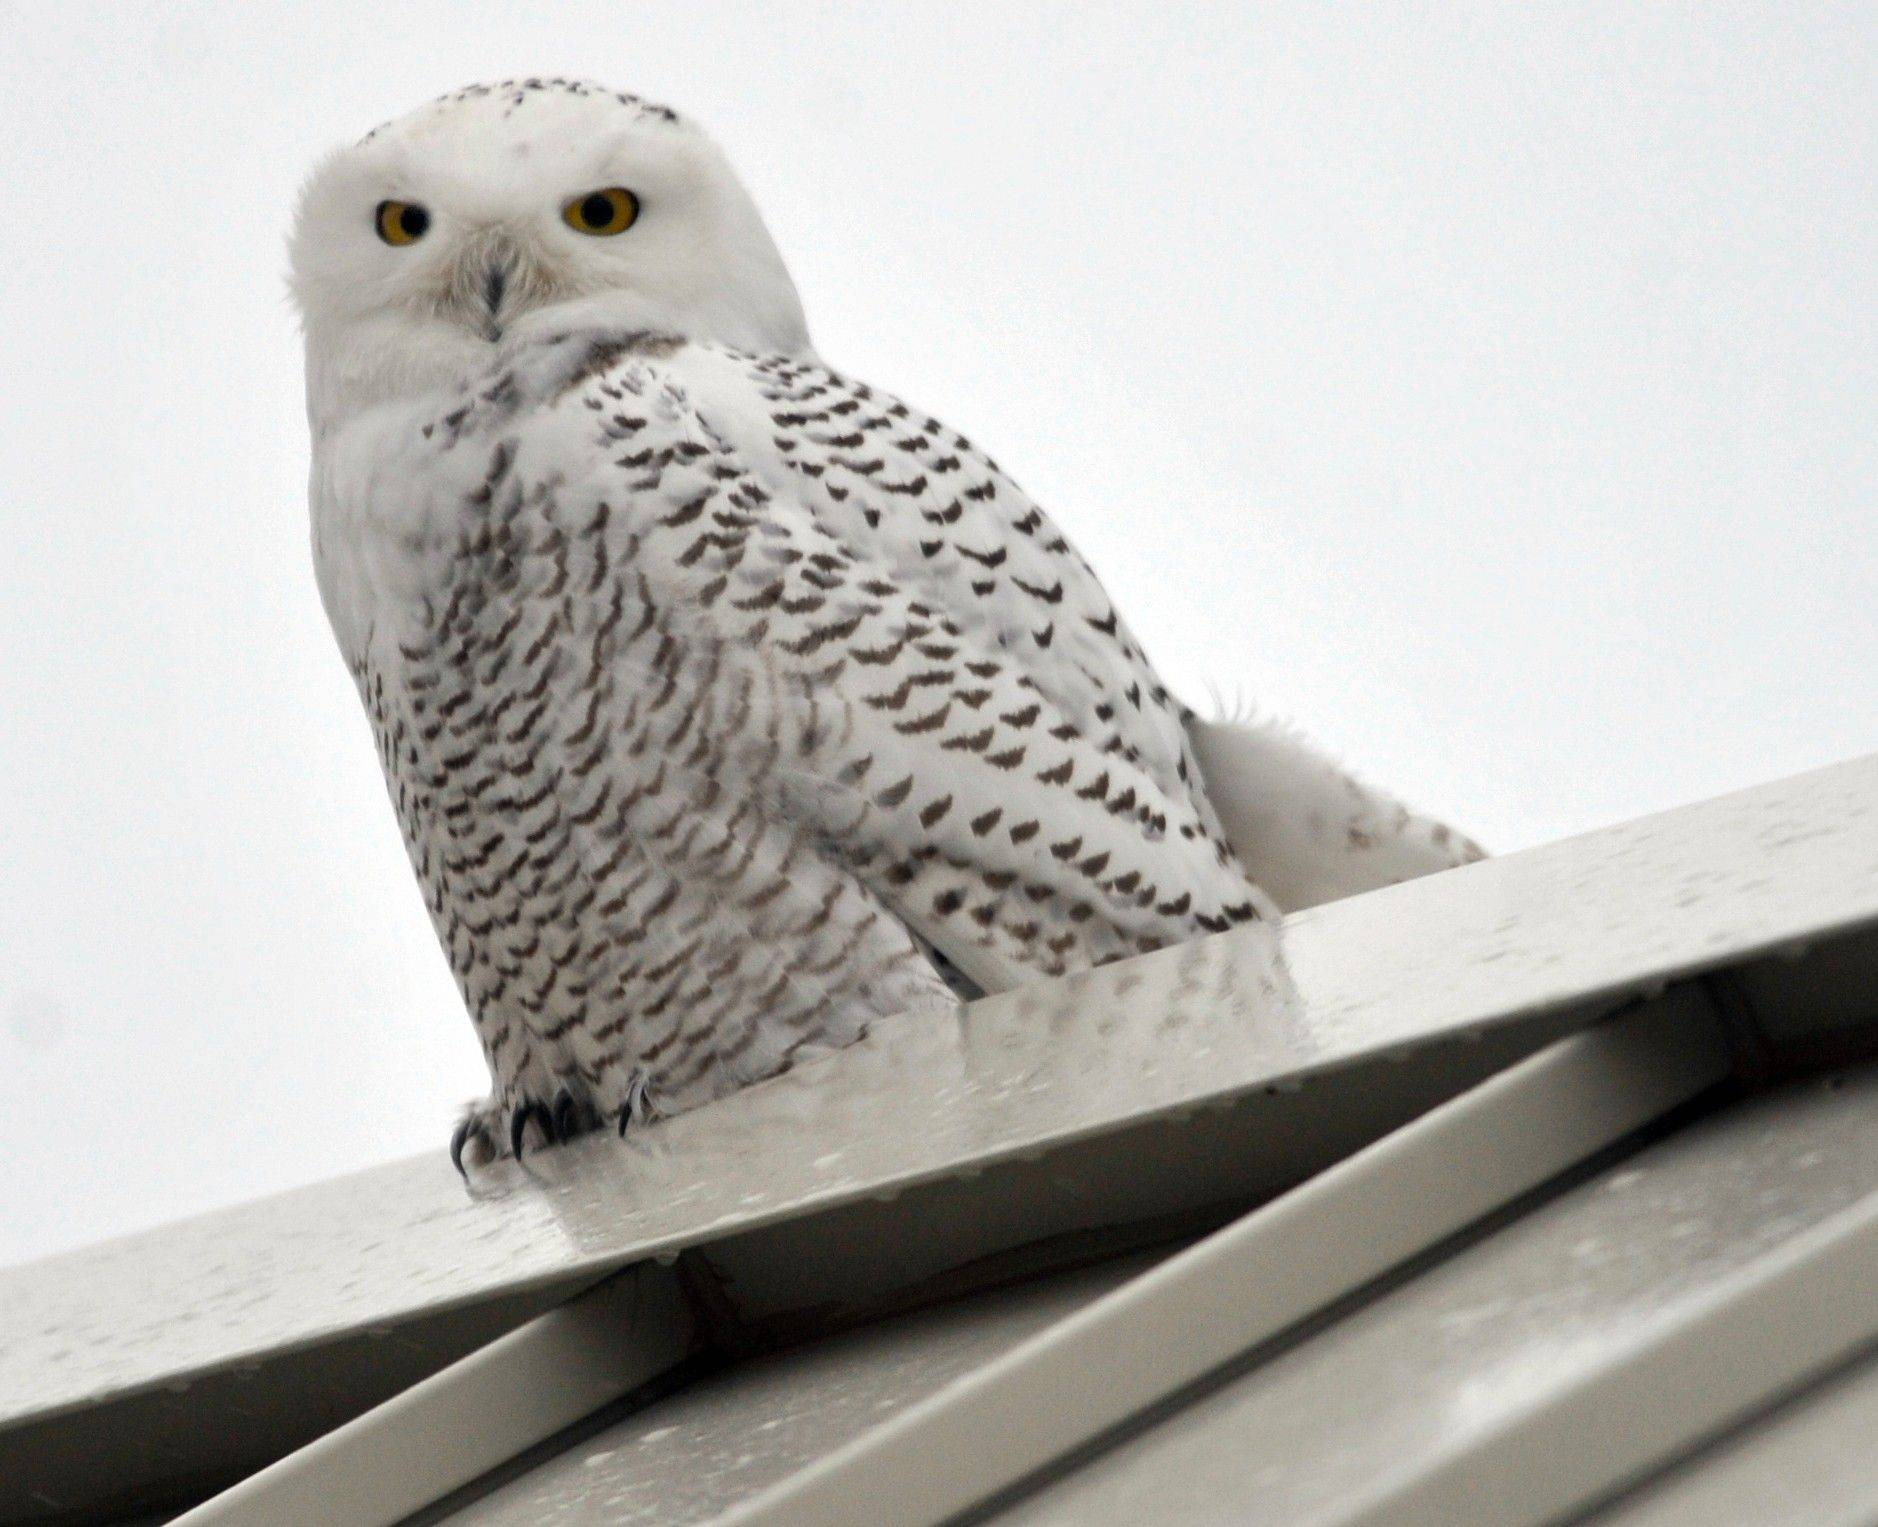 Outdoors notes: Snowy owl sightings